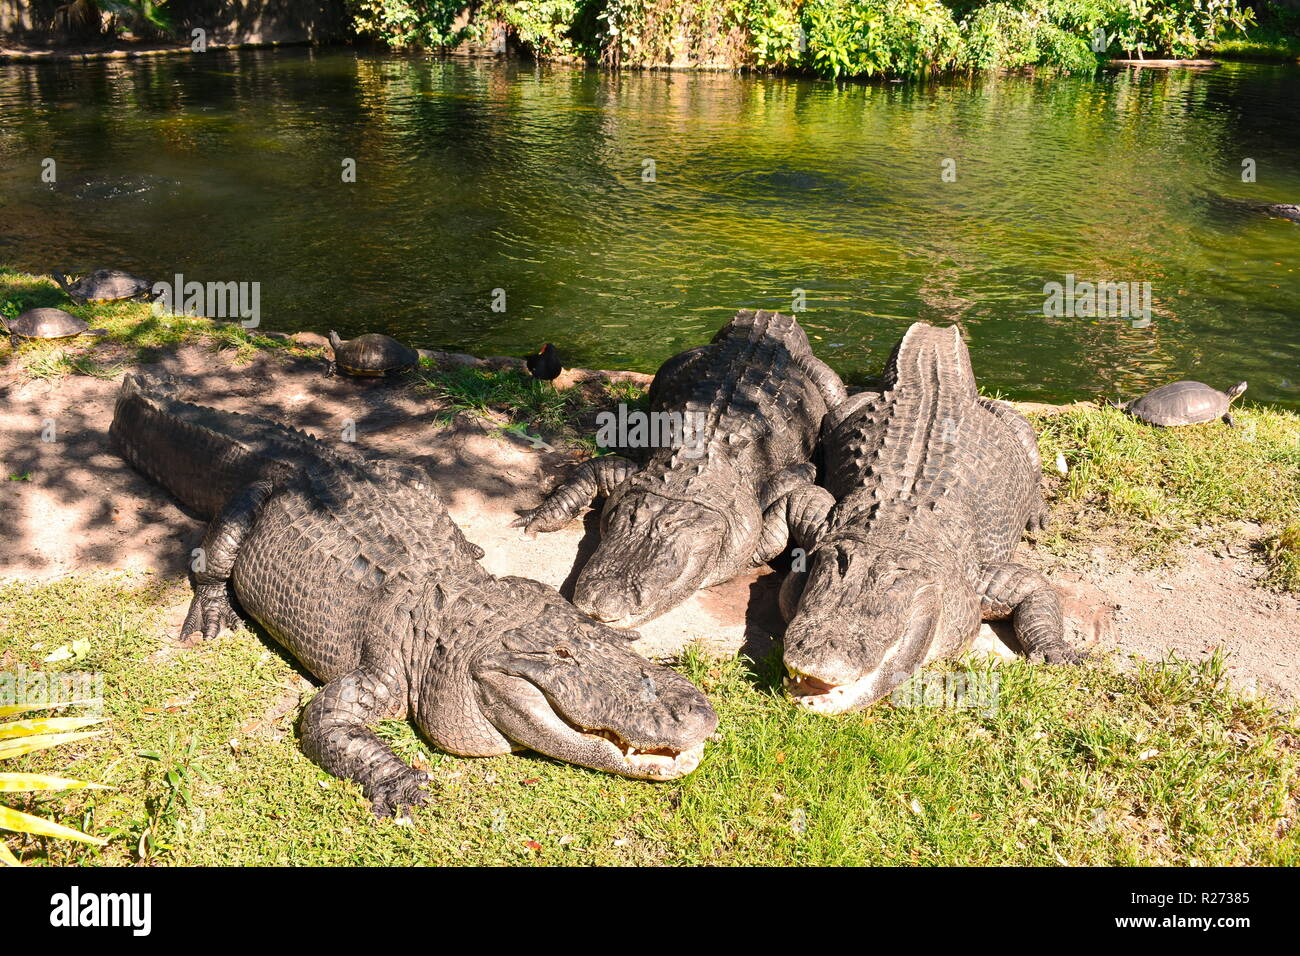 Tampa, Florida. October 25, 2018. Alligators relaxing on the side of a lagoon at Tampa Bay area. - Stock Image